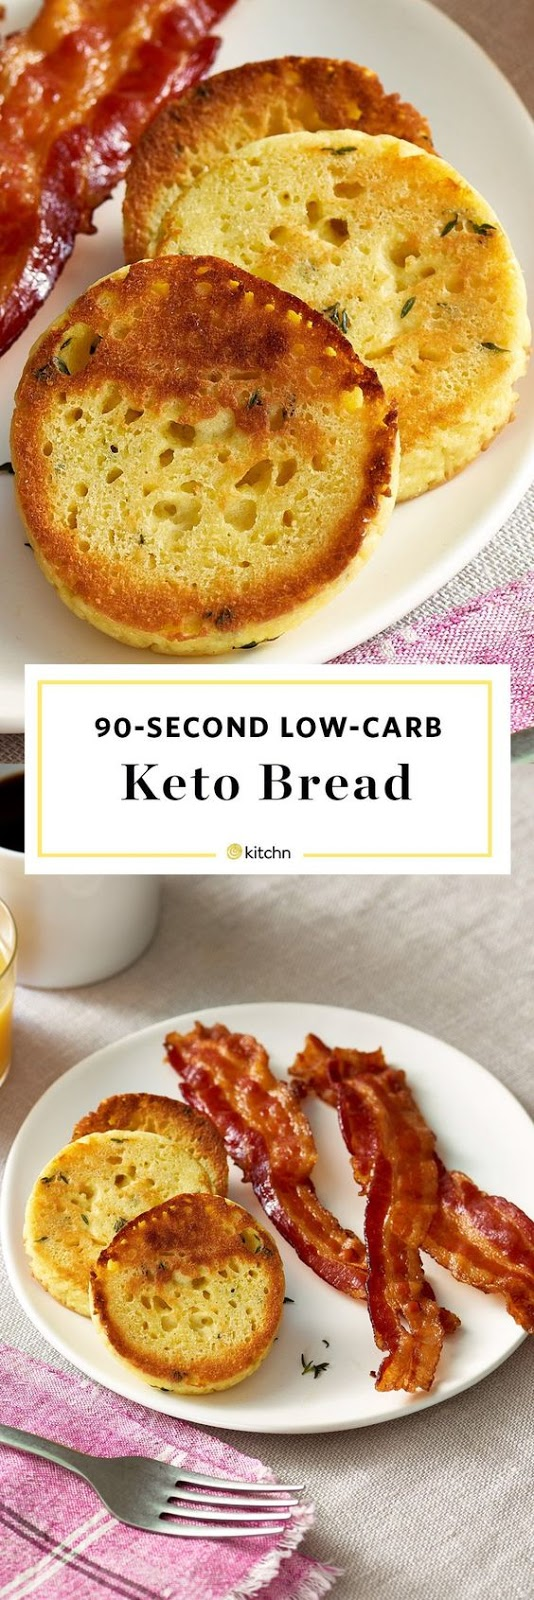 90-Second Keto Bread